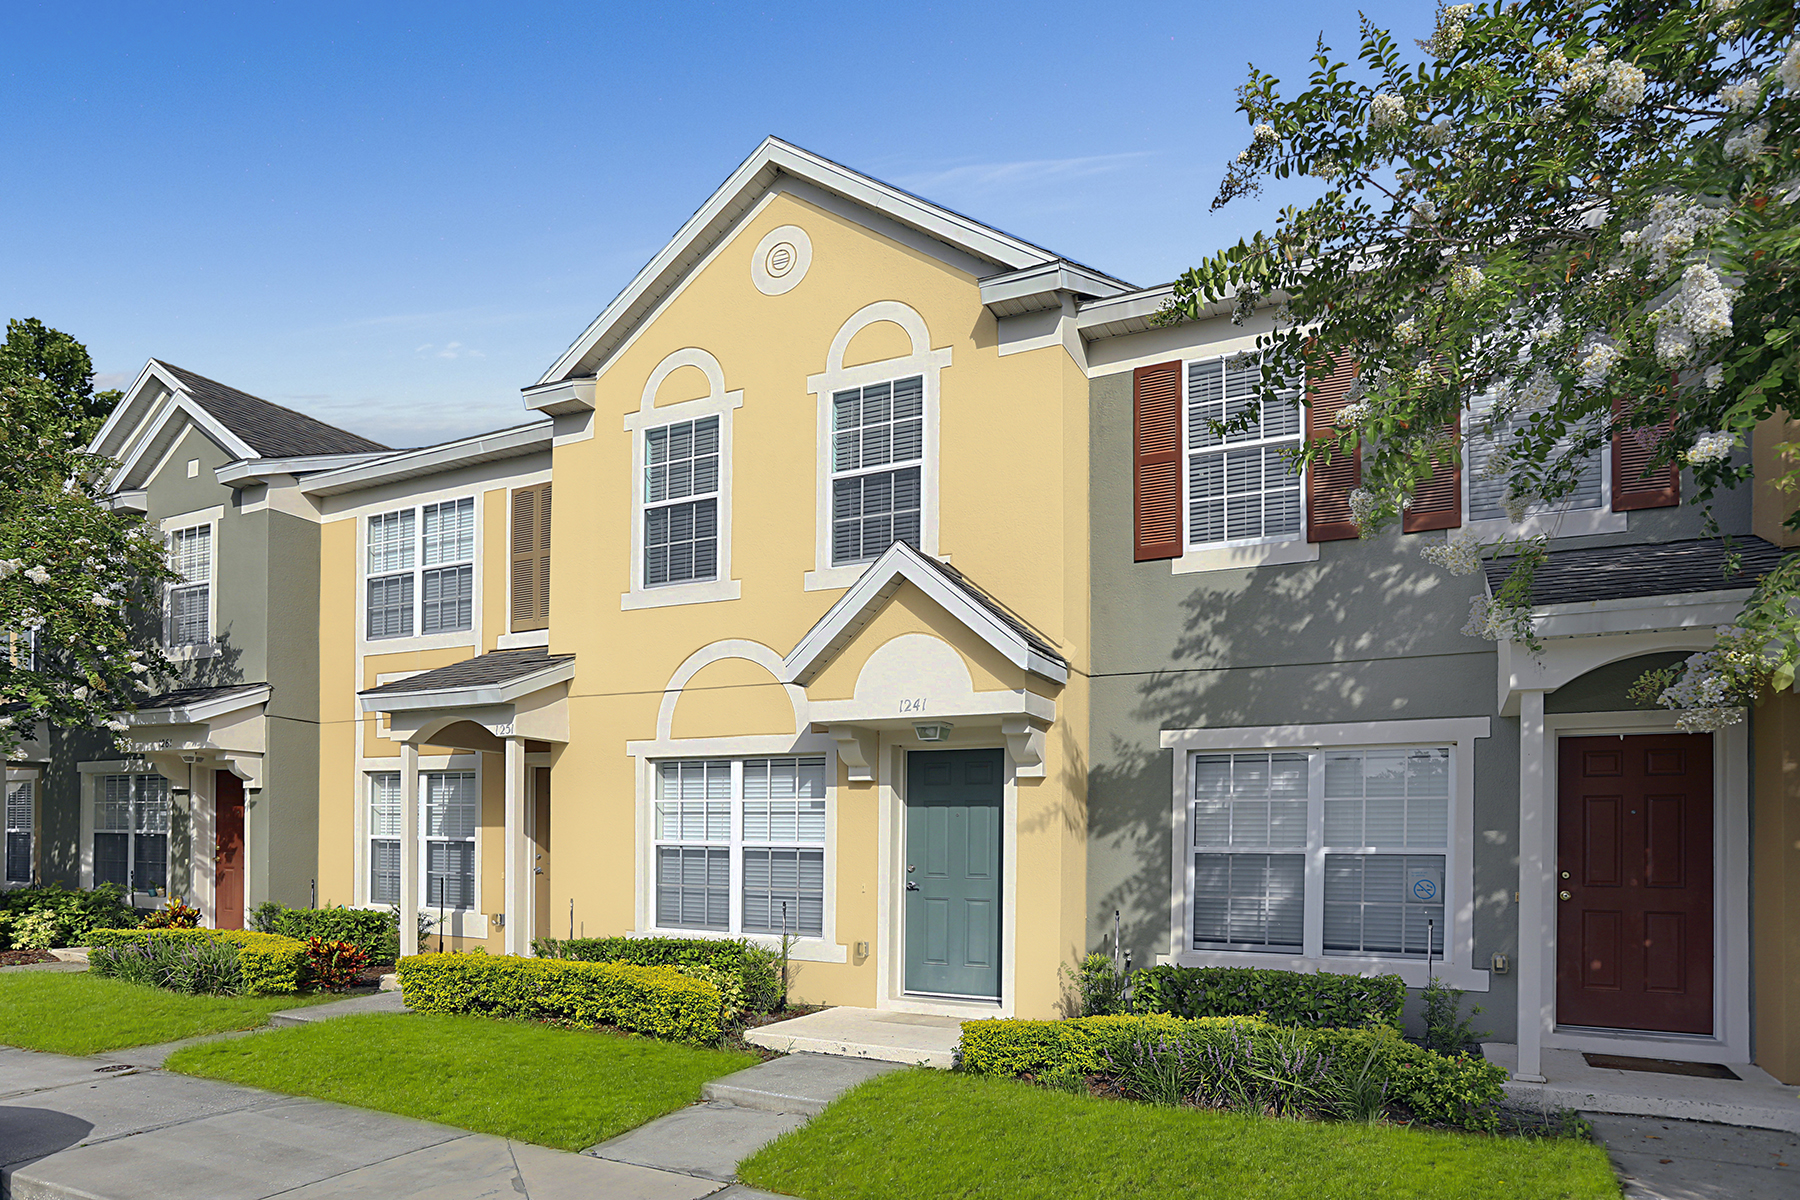 townhouses for Sale at SANFORD 1241 Stockton Dr Sanford, Florida 32771 United States